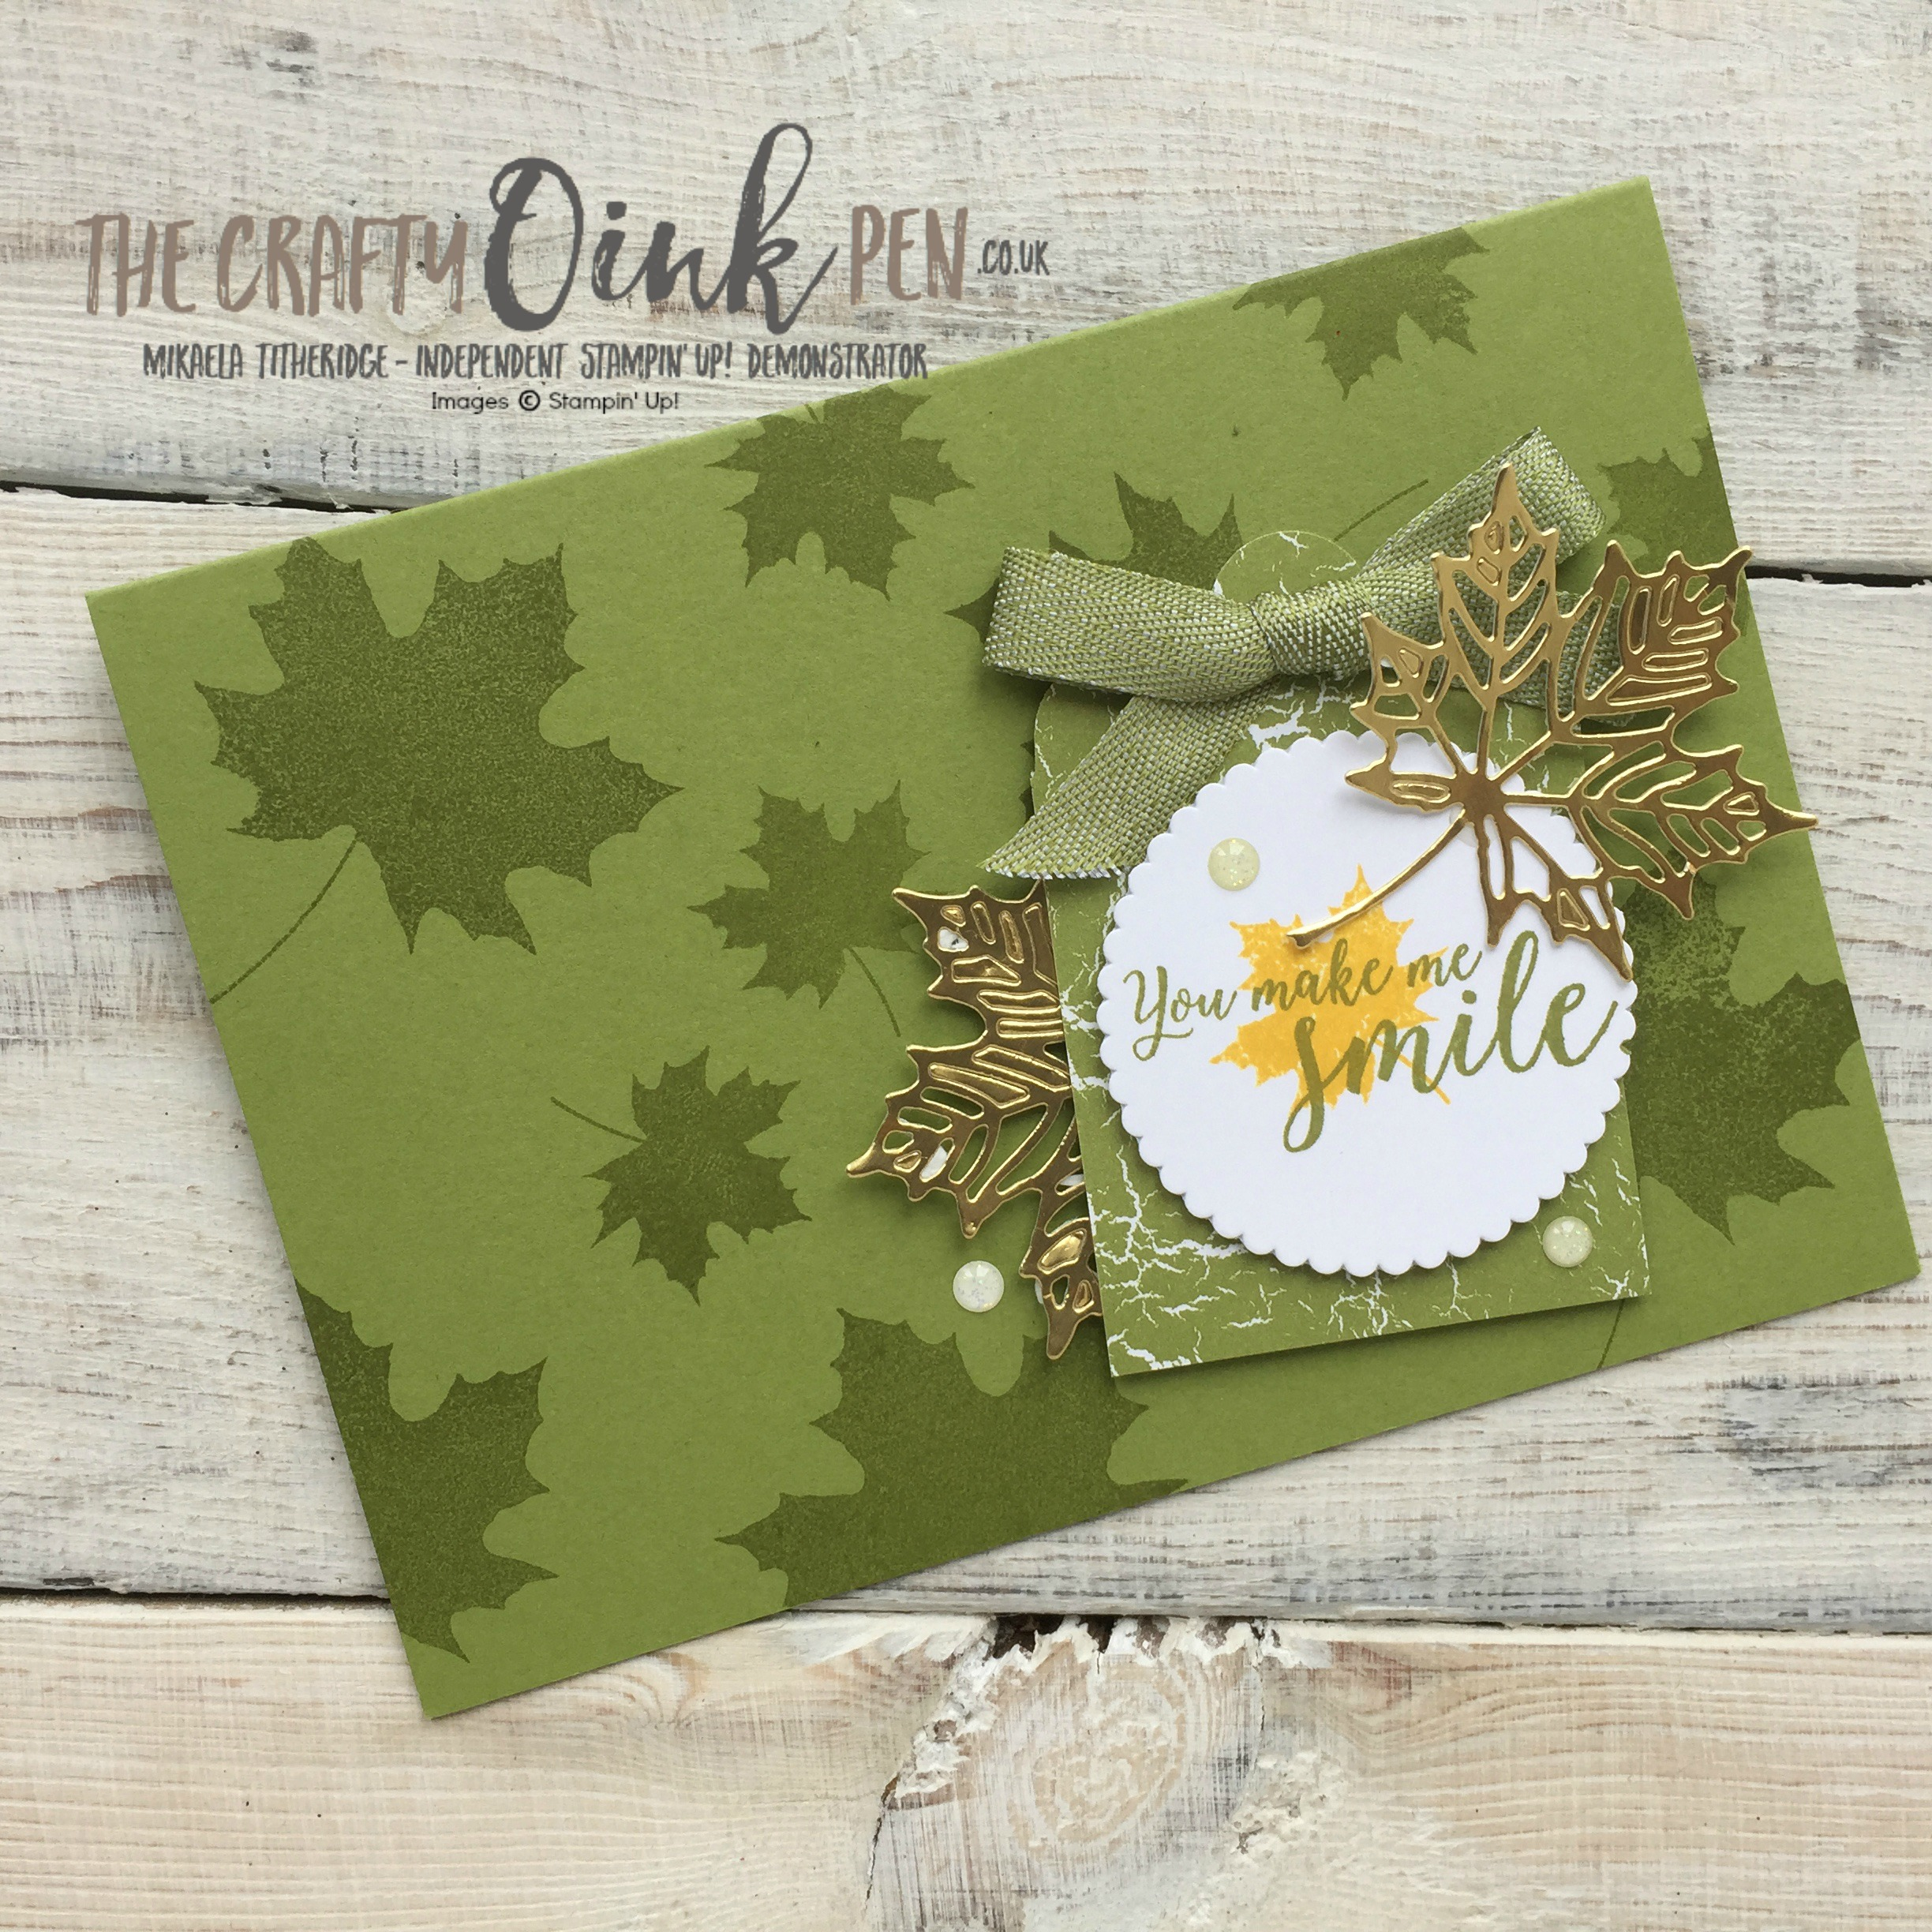 Color Theory brings Autumn Leaves by Mikaela Titheridge, Independent Stampin' Up! Demonstrator, The Crafty oINK Pen